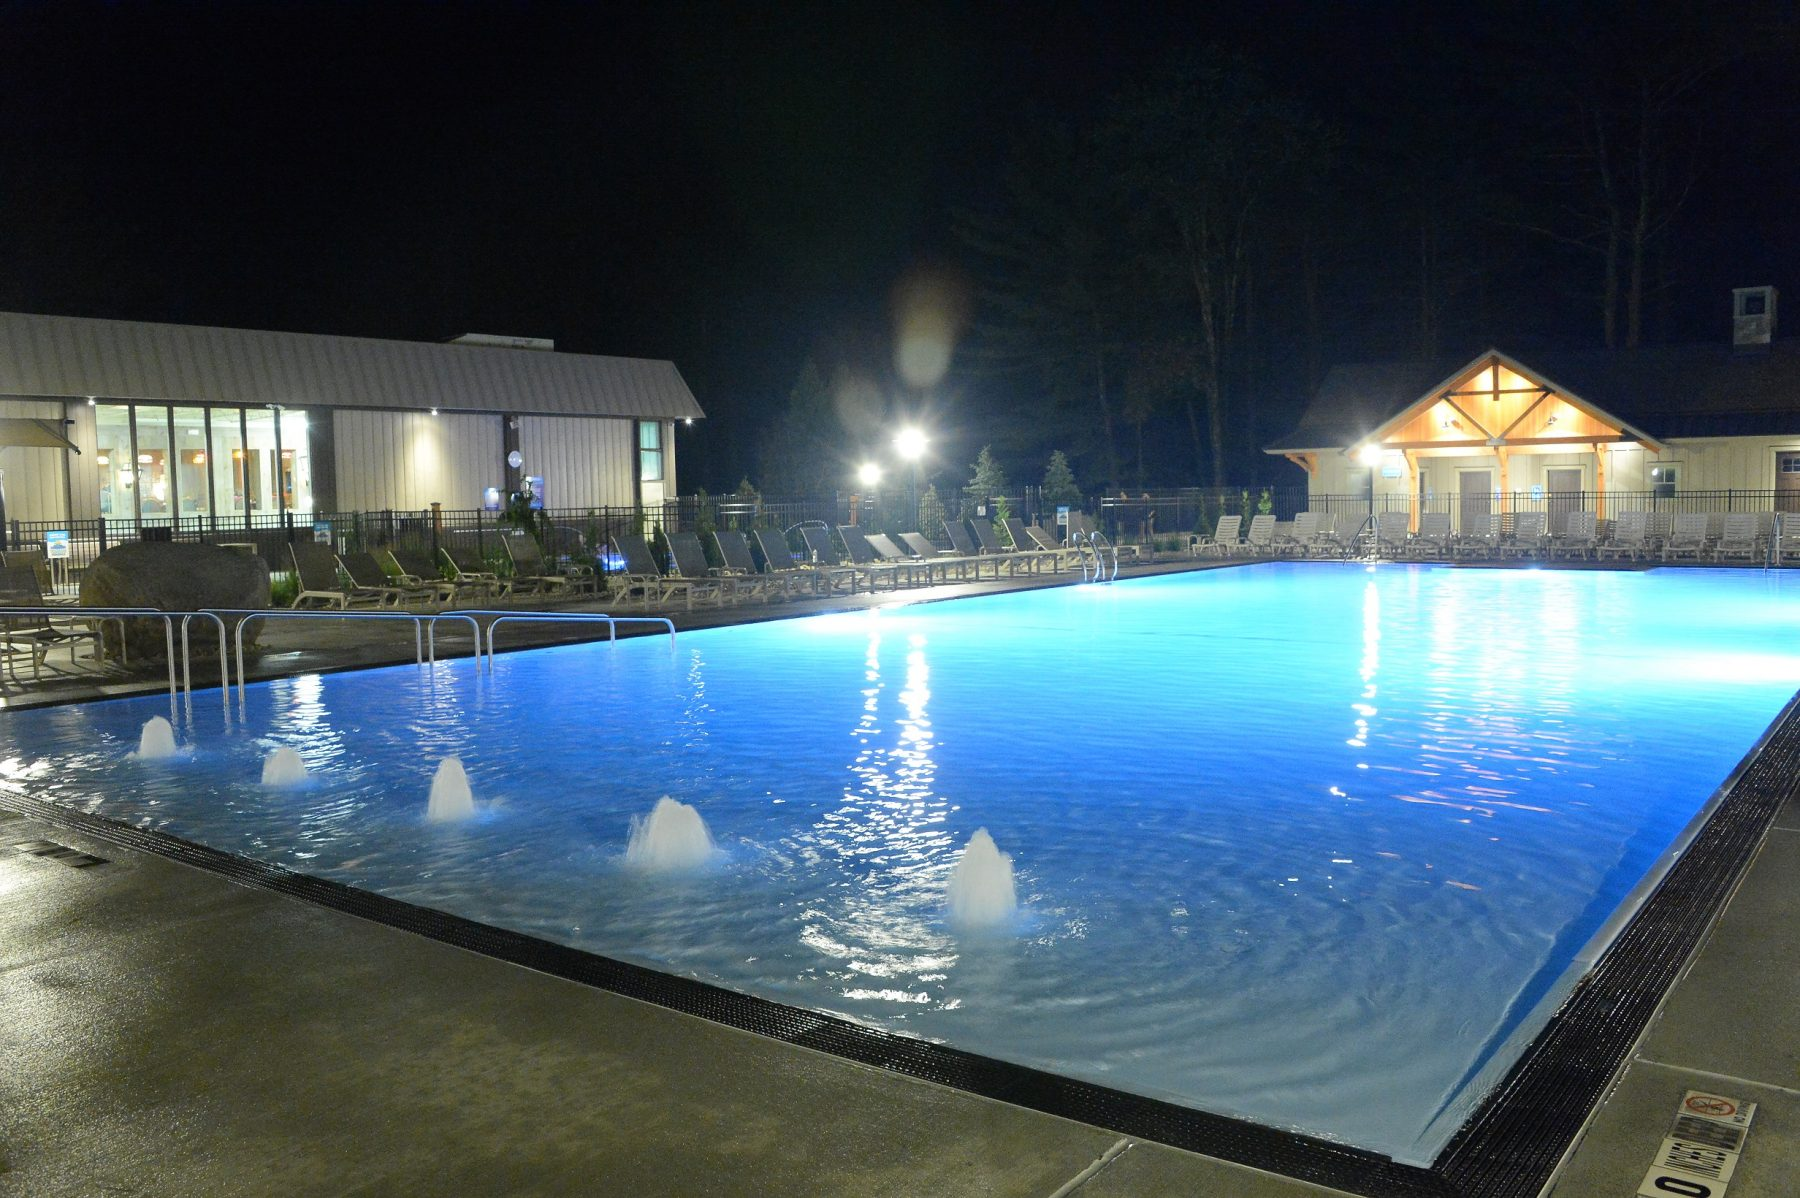 The zero entry pool is shown at night in the foreground. The east building and bathrooms are shown in the background.